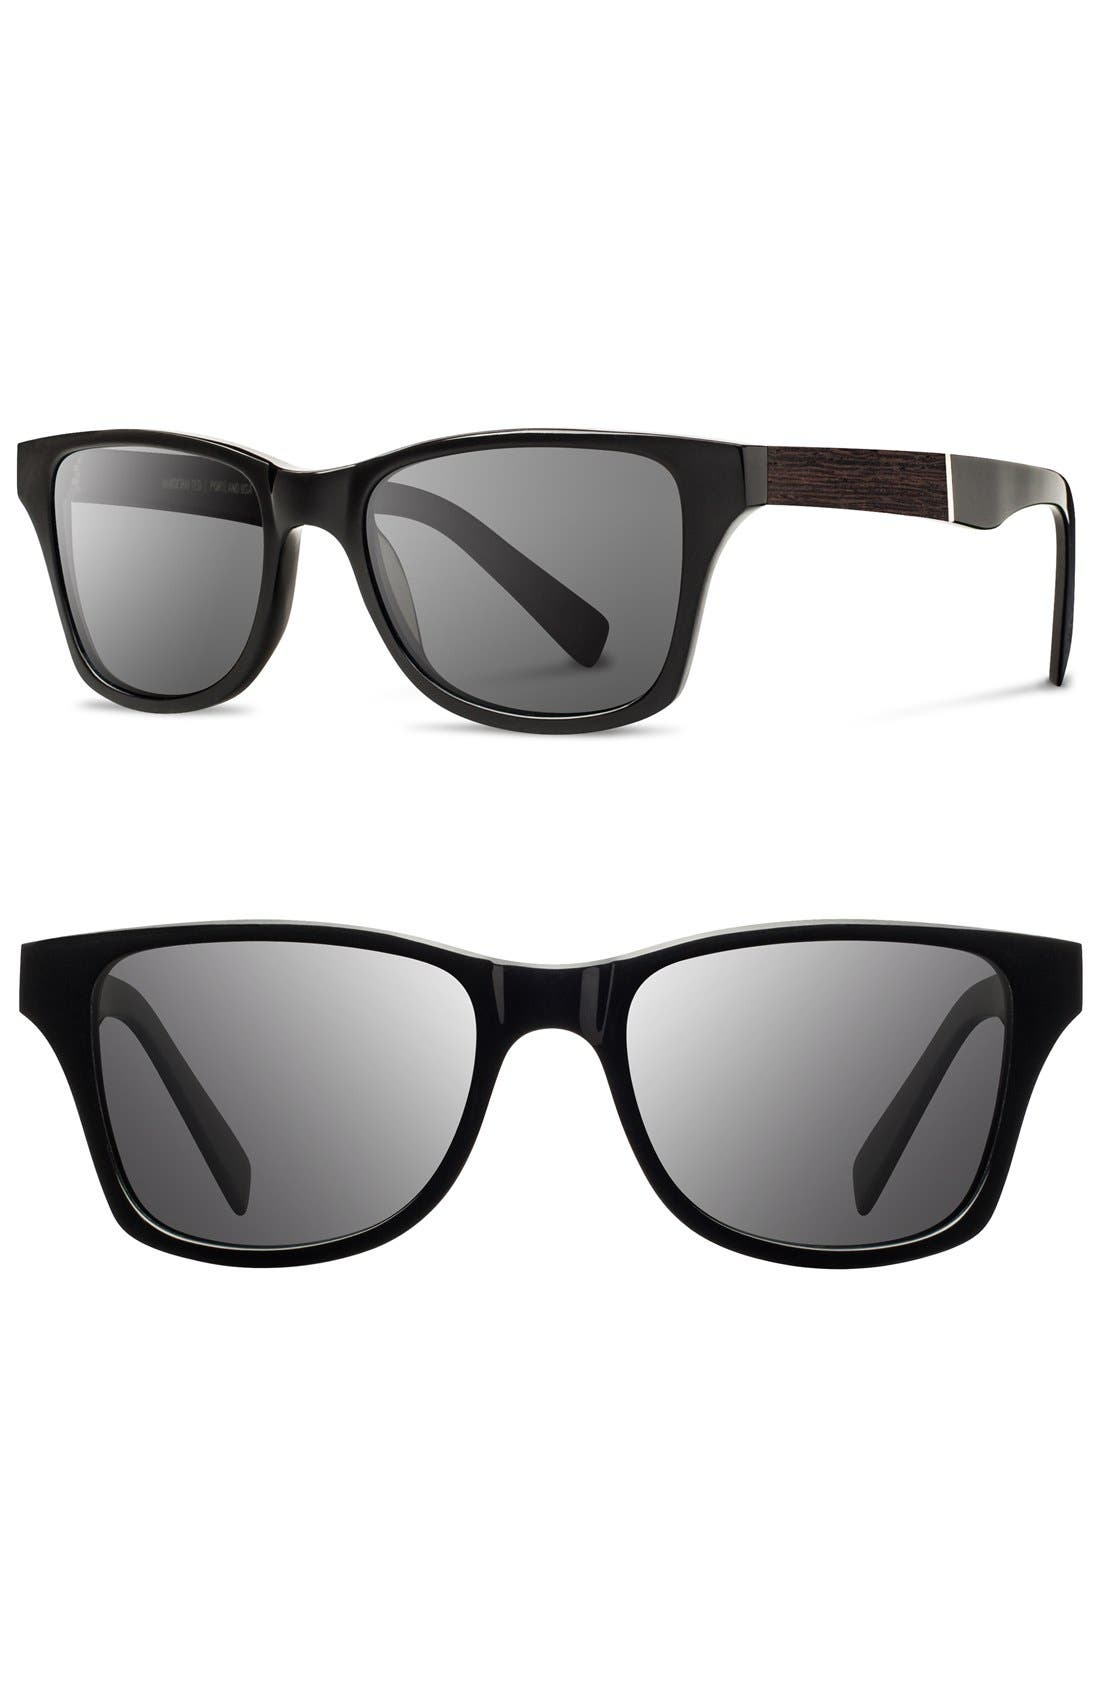 'Canby' 53mm Wood Sunglasses,                             Main thumbnail 1, color,                             Black/ Ebony/ Grey